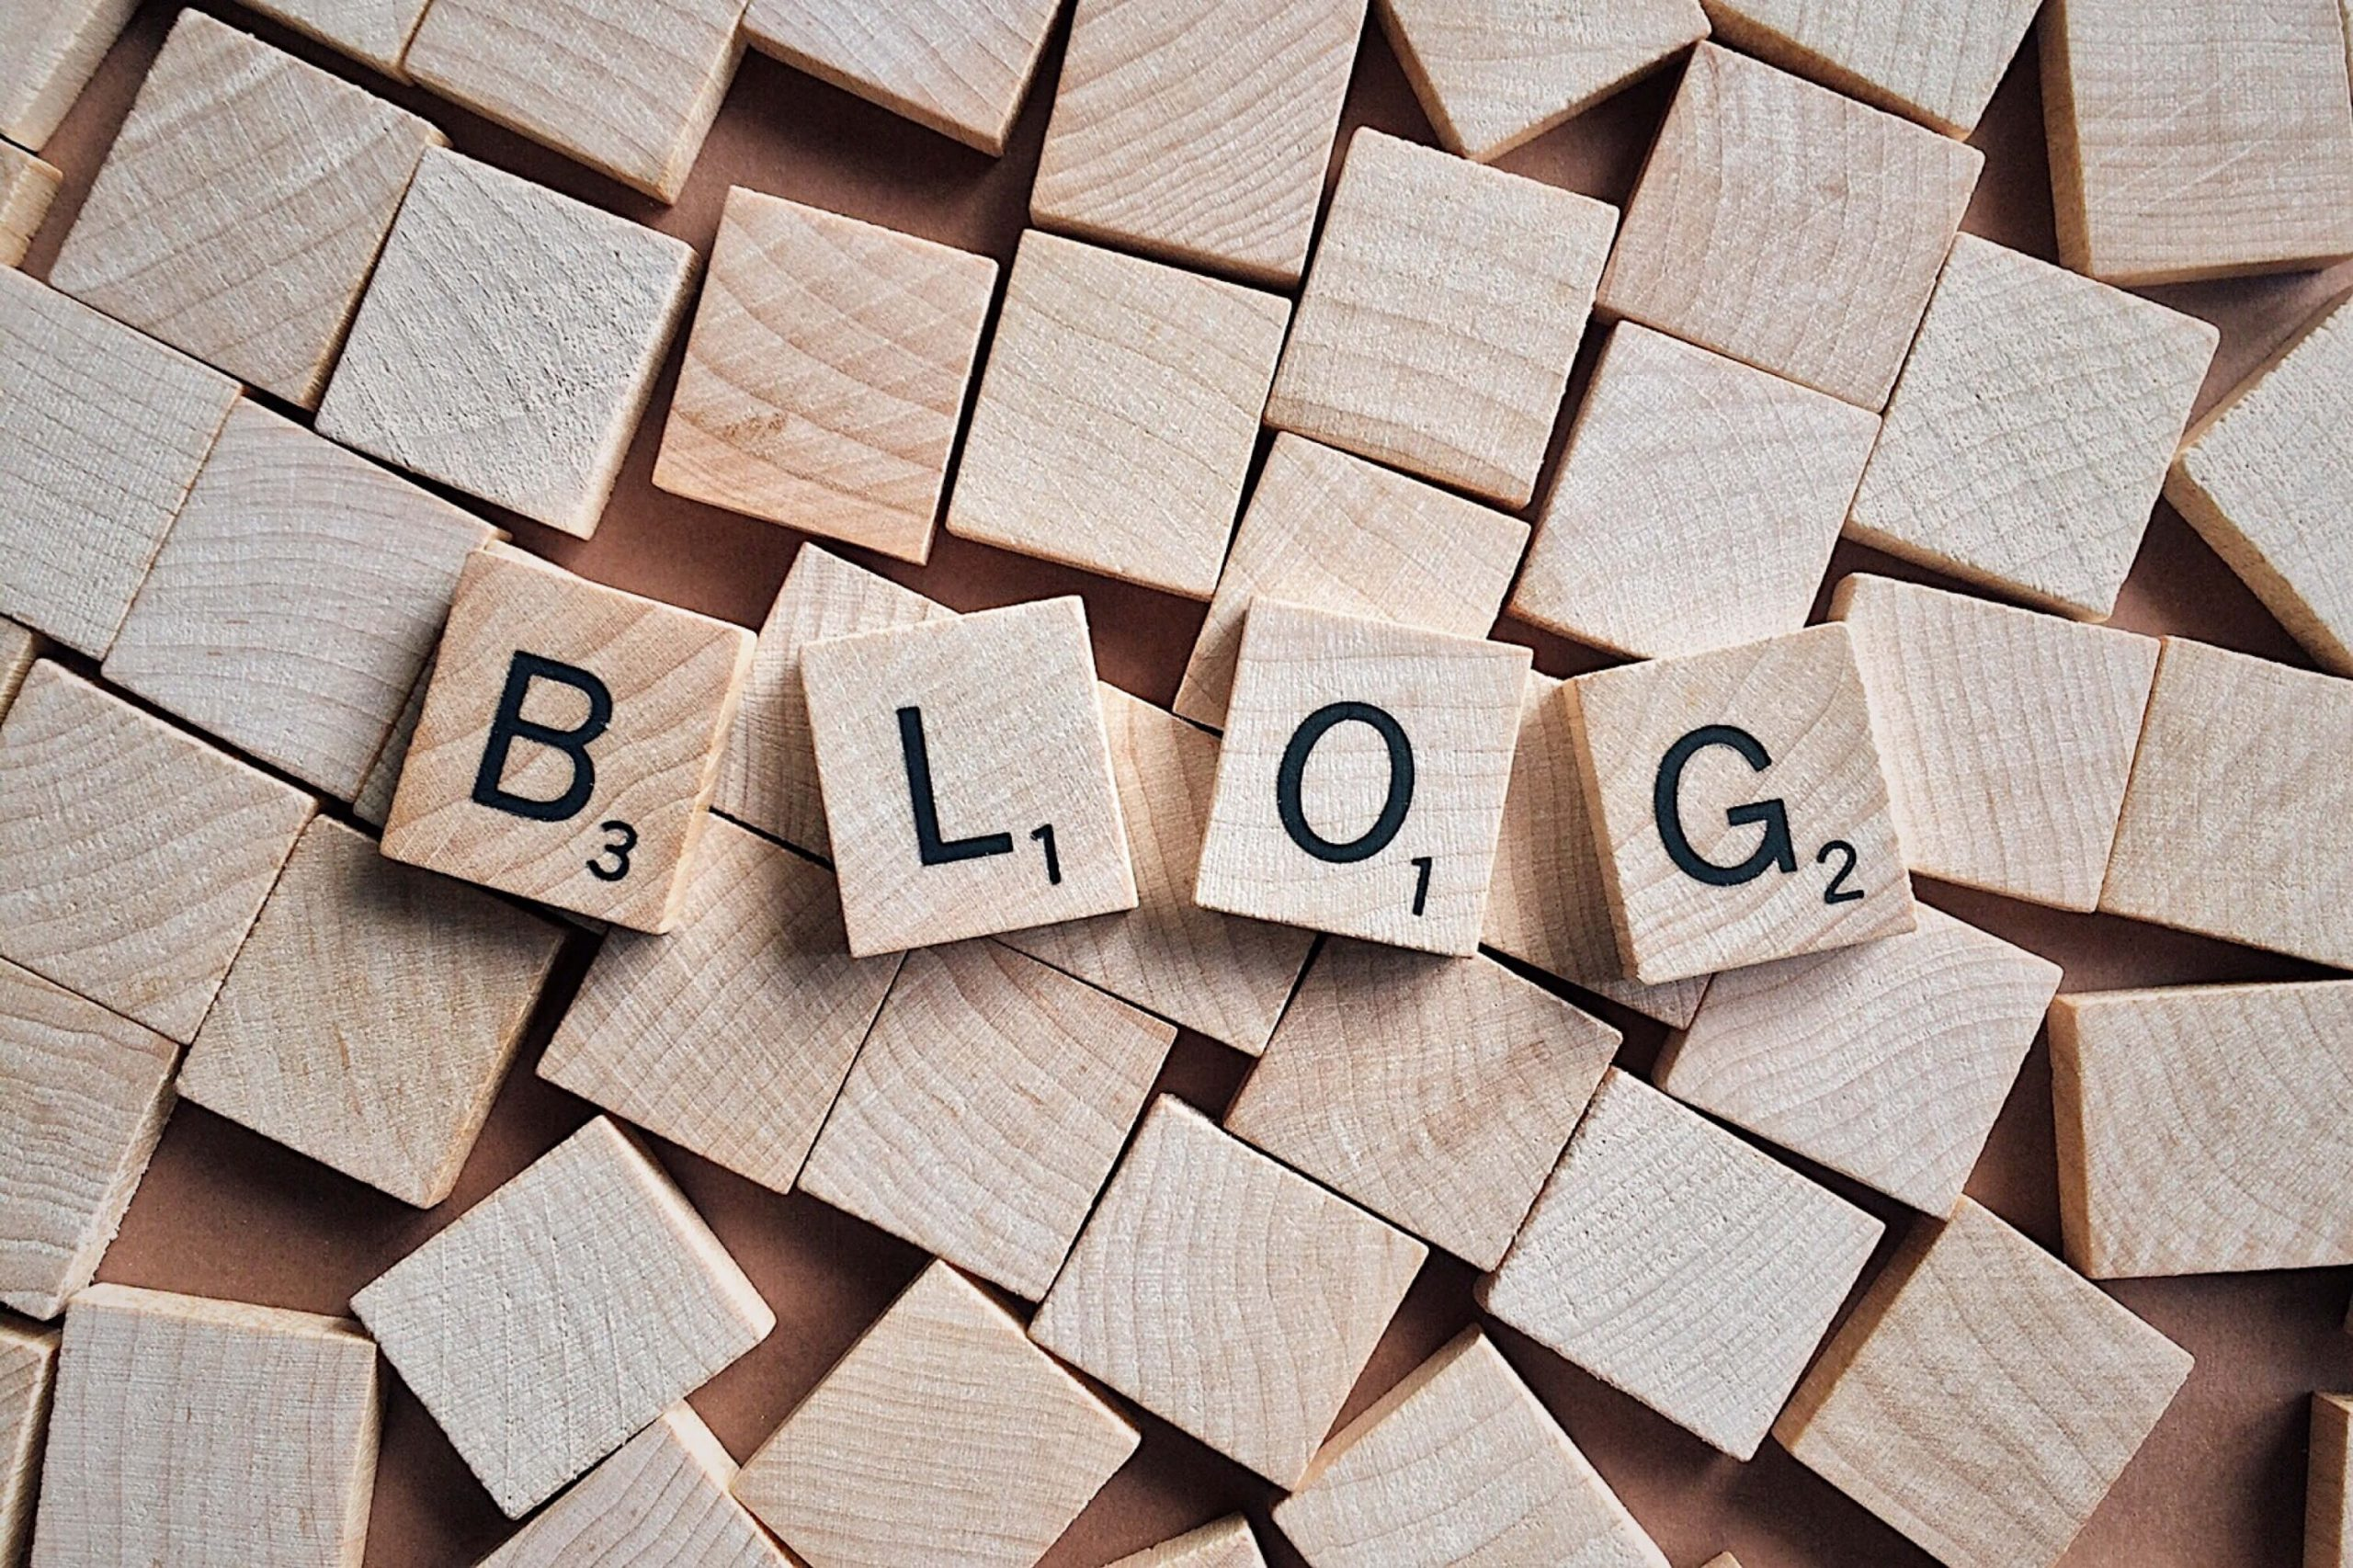 Blog content and articles